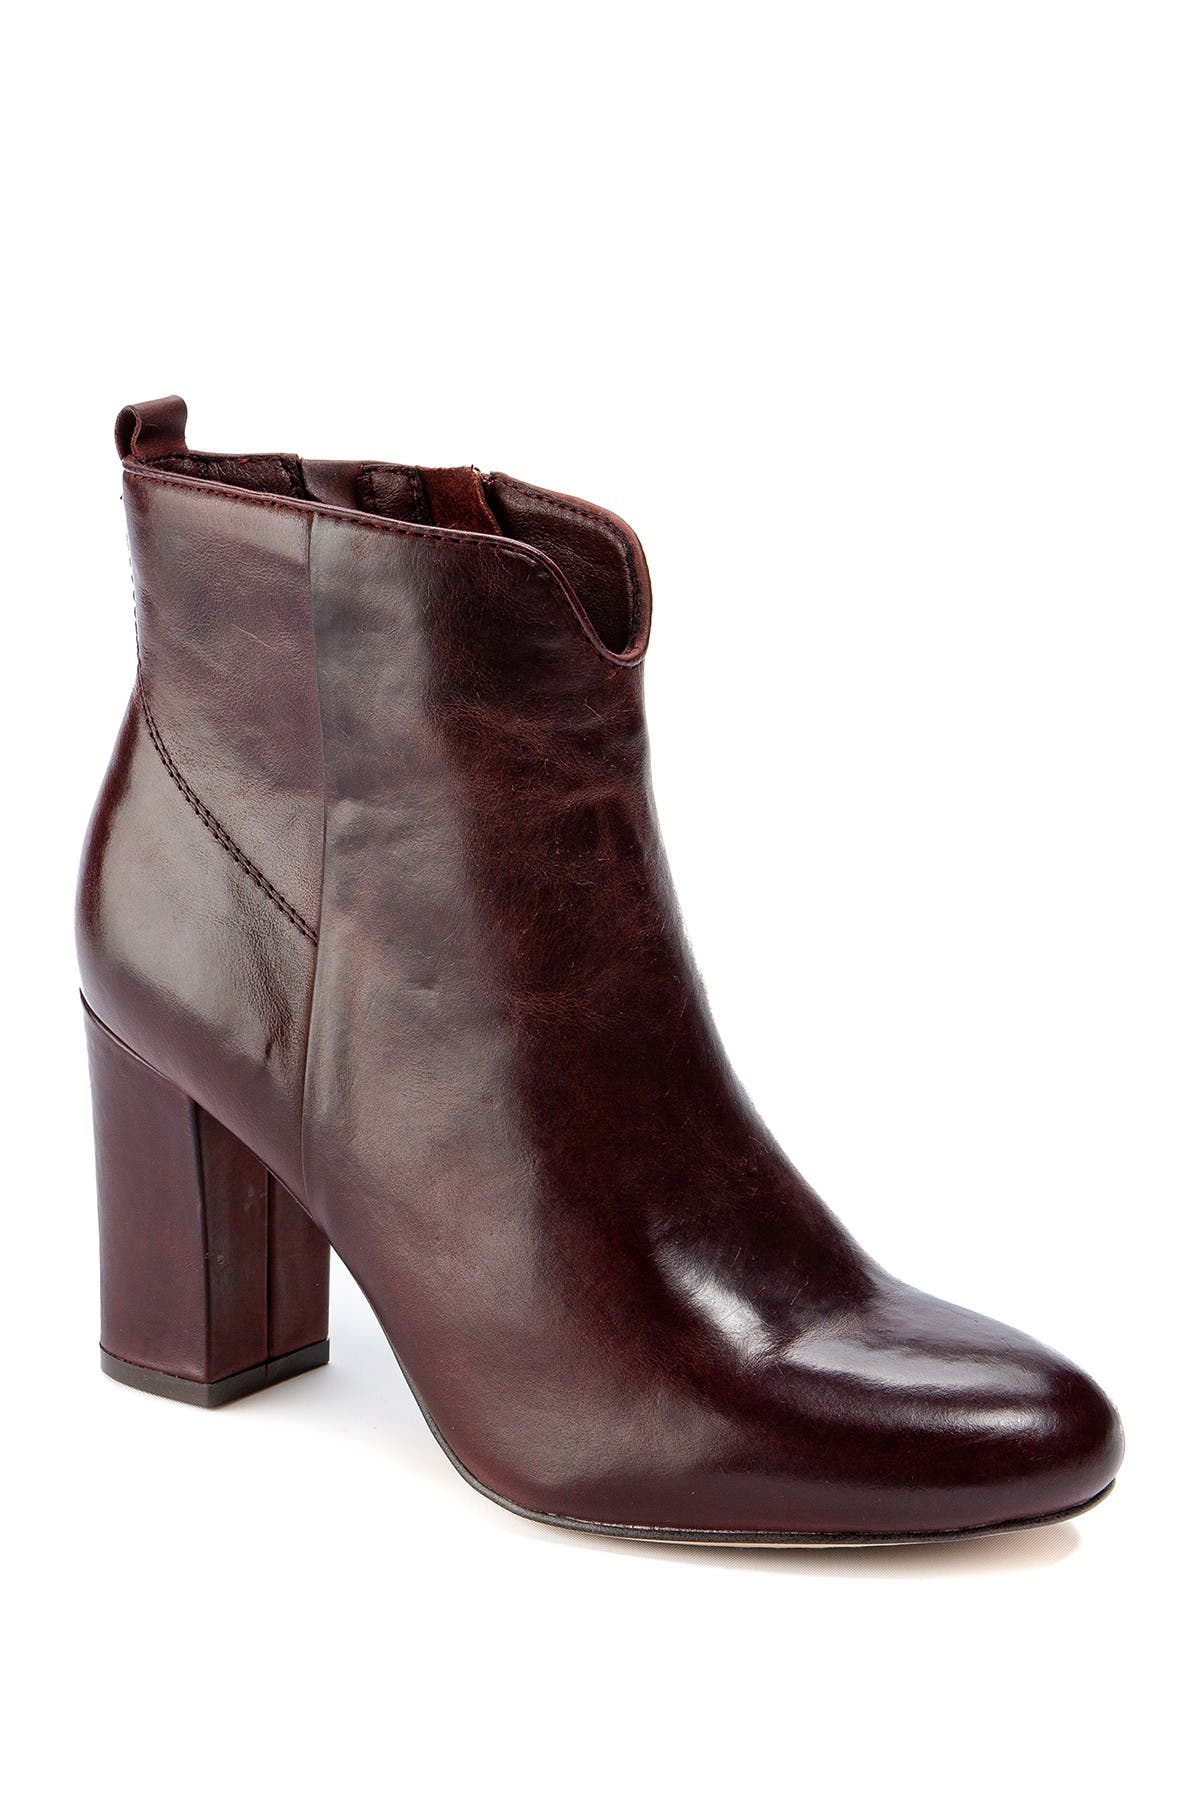 Image of LUCCA LANE Avra Ankle Bootie